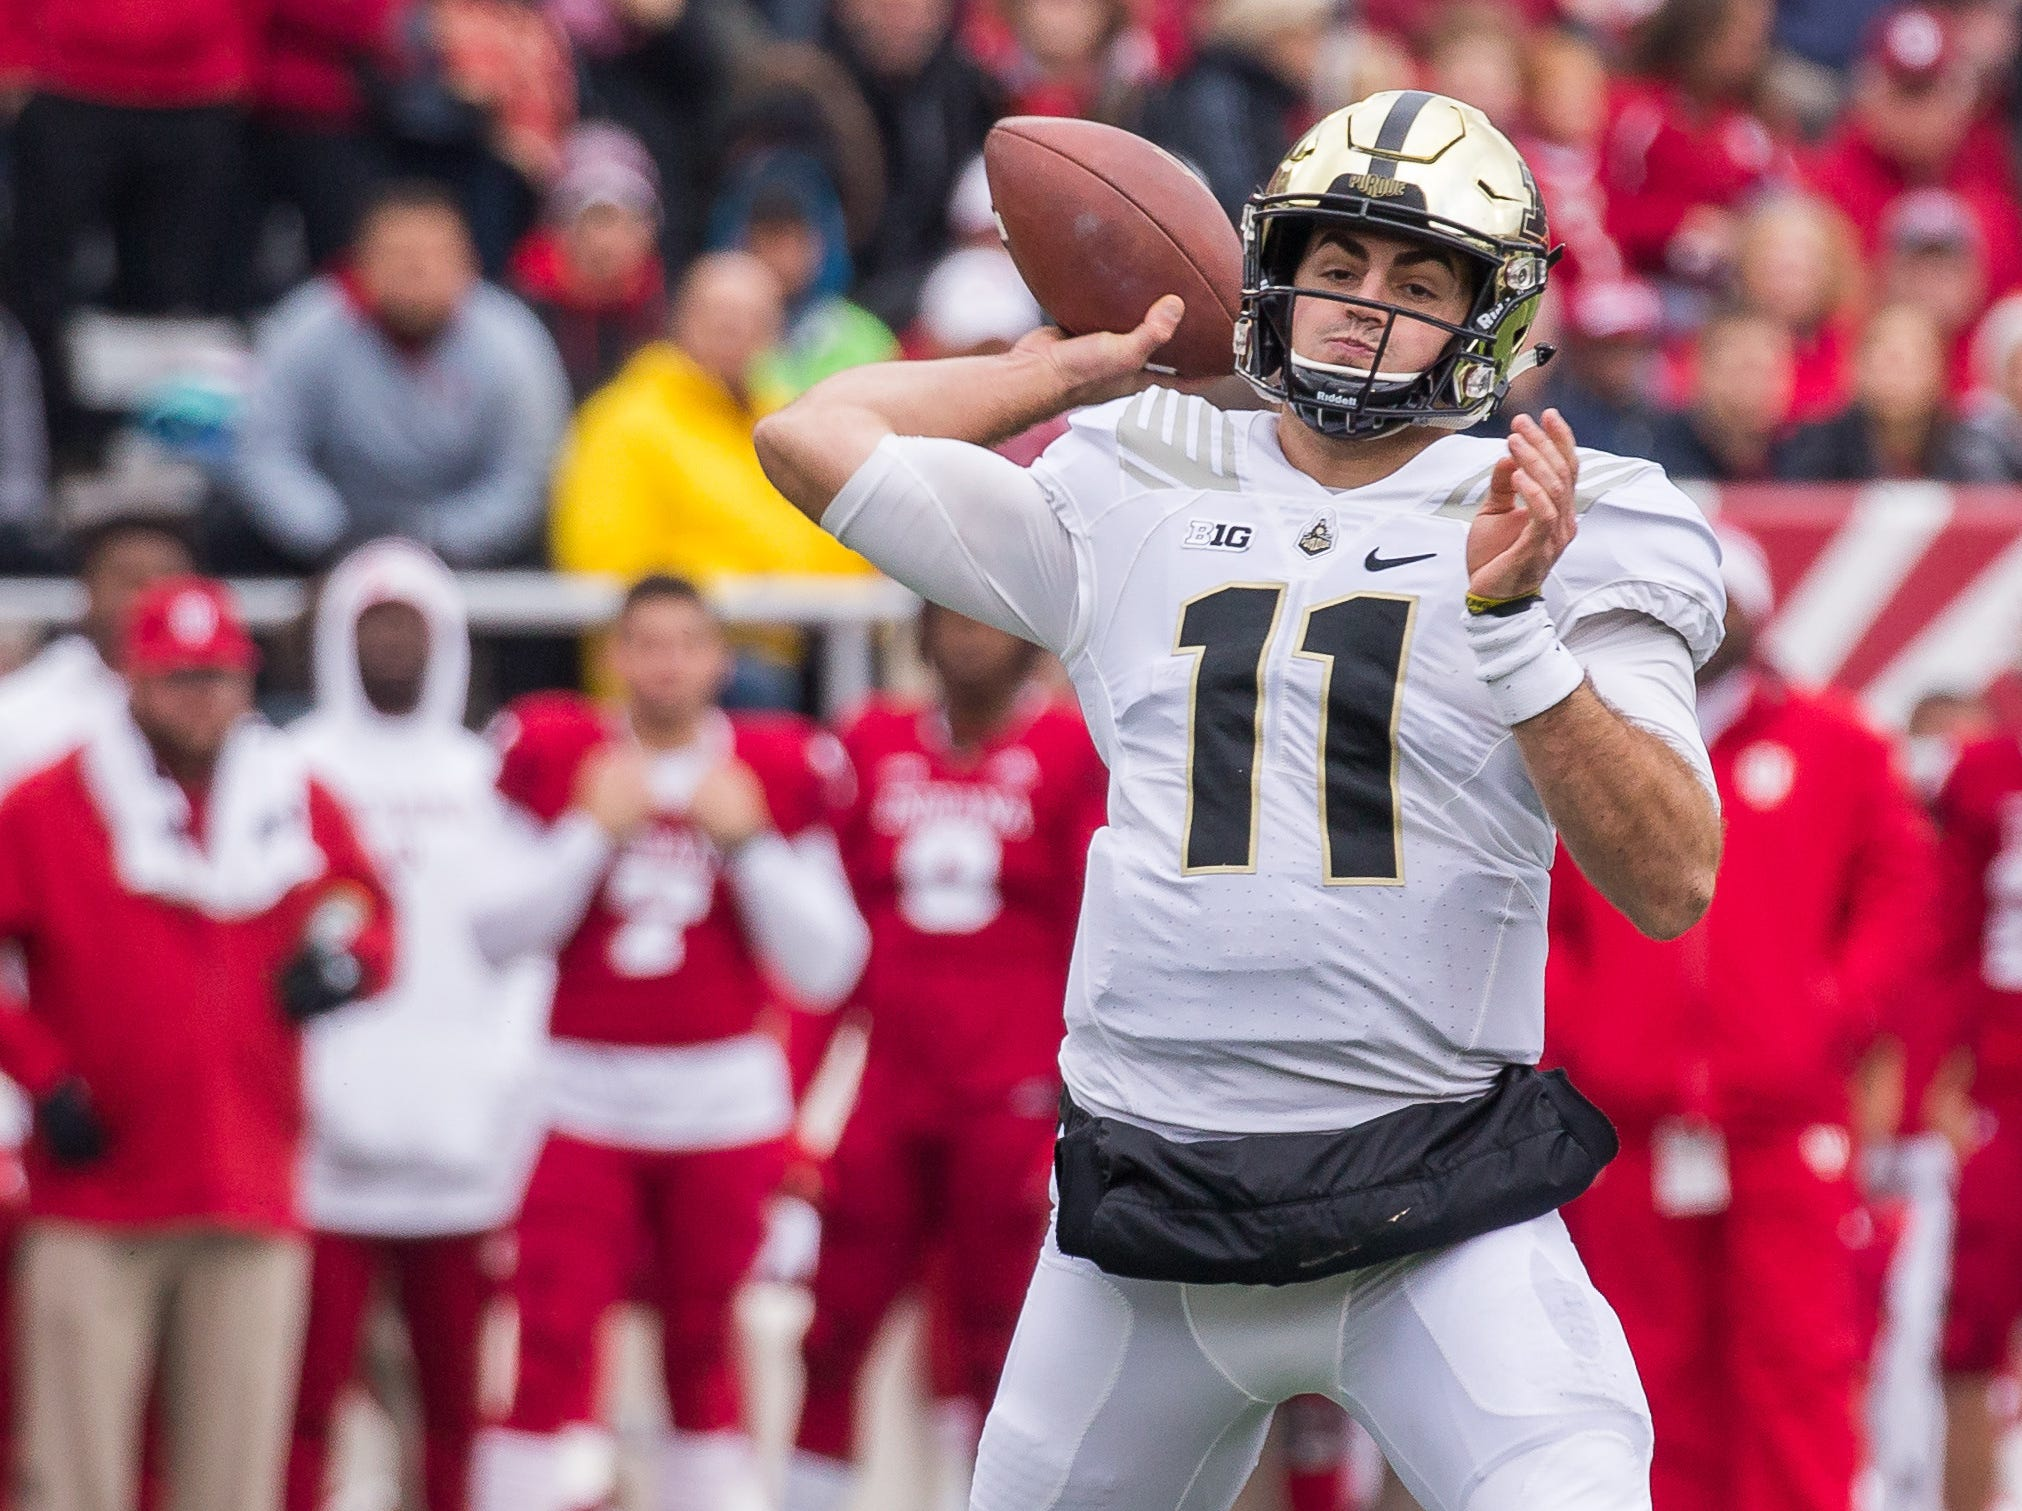 Nov 24, 2018; Bloomington, IN, USA; Purdue Boilermakers quarterback David Blough (11) throws the ball in the first quarter against the Indiana Hoosiers at Memorial Stadium. Mandatory Credit: Trevor Ruszkowski-USA TODAY Sports